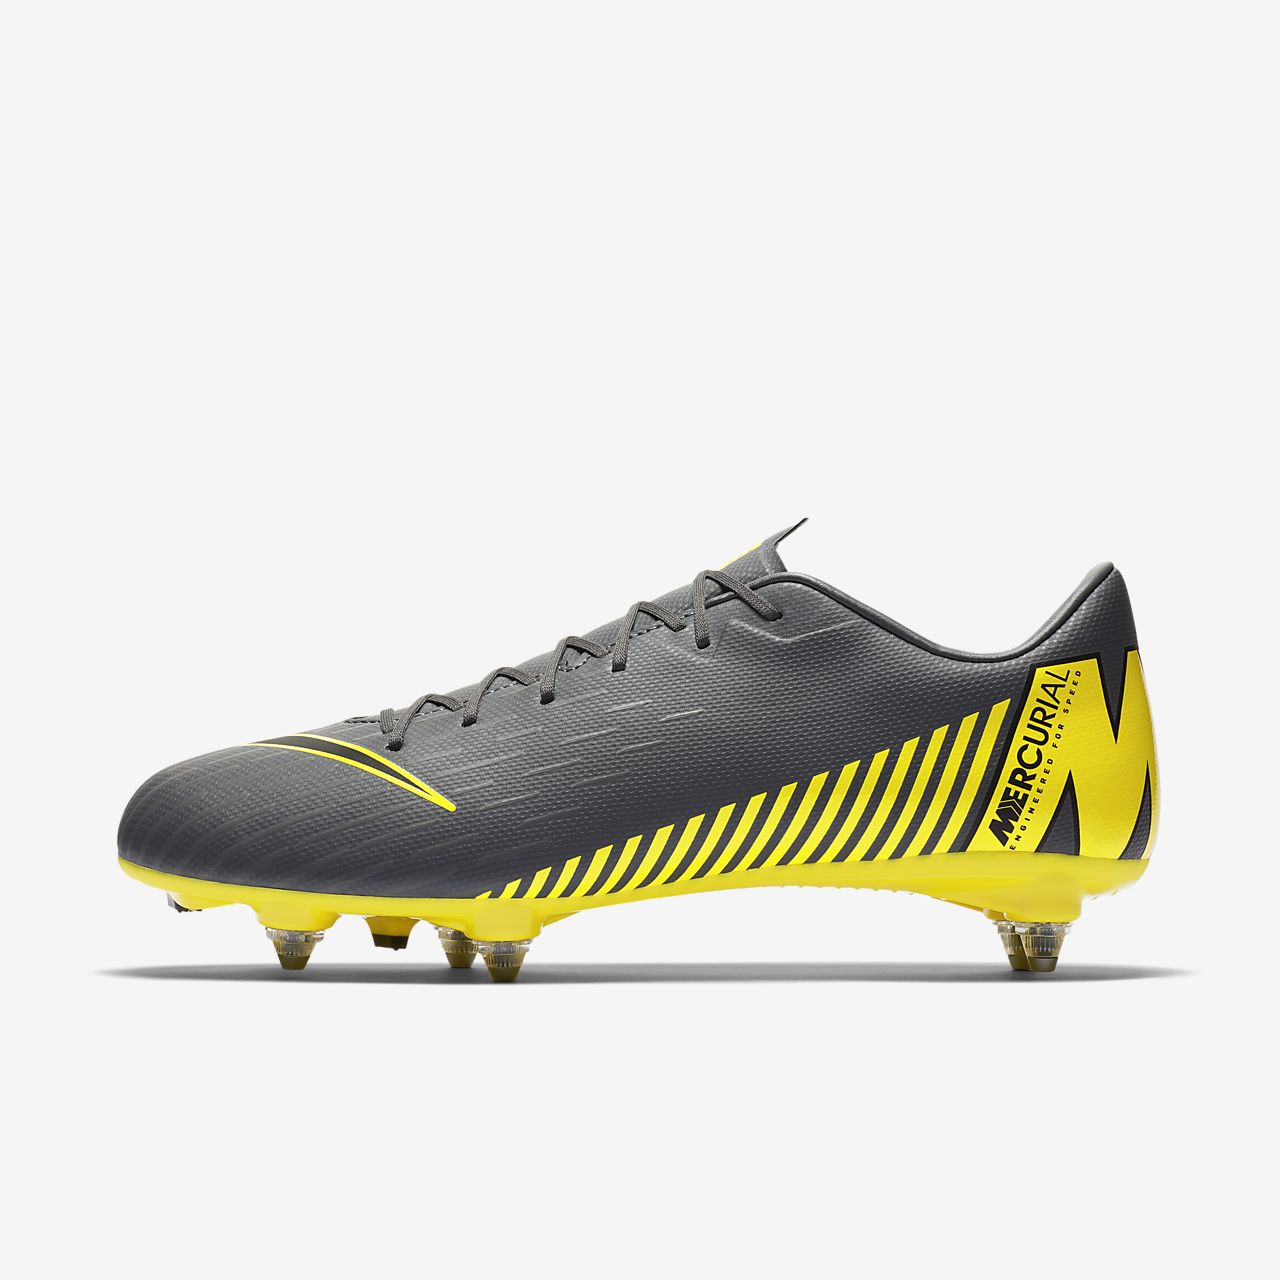 the latest 73a3b ffa8a Nike Mercurial Vapor XII Academy SG-PRO